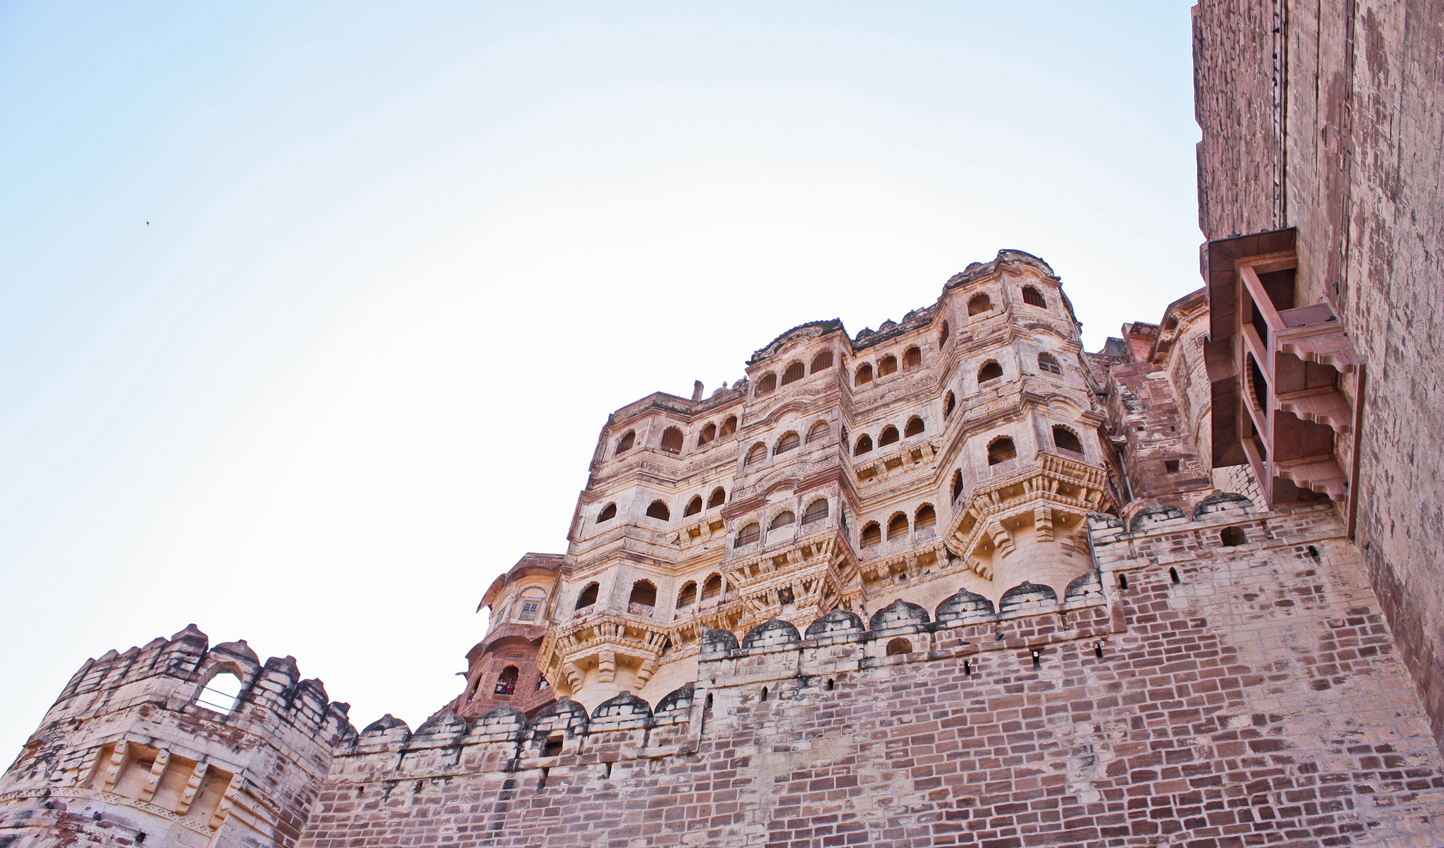 Marvel at the architecture of Mehrangarh Fort